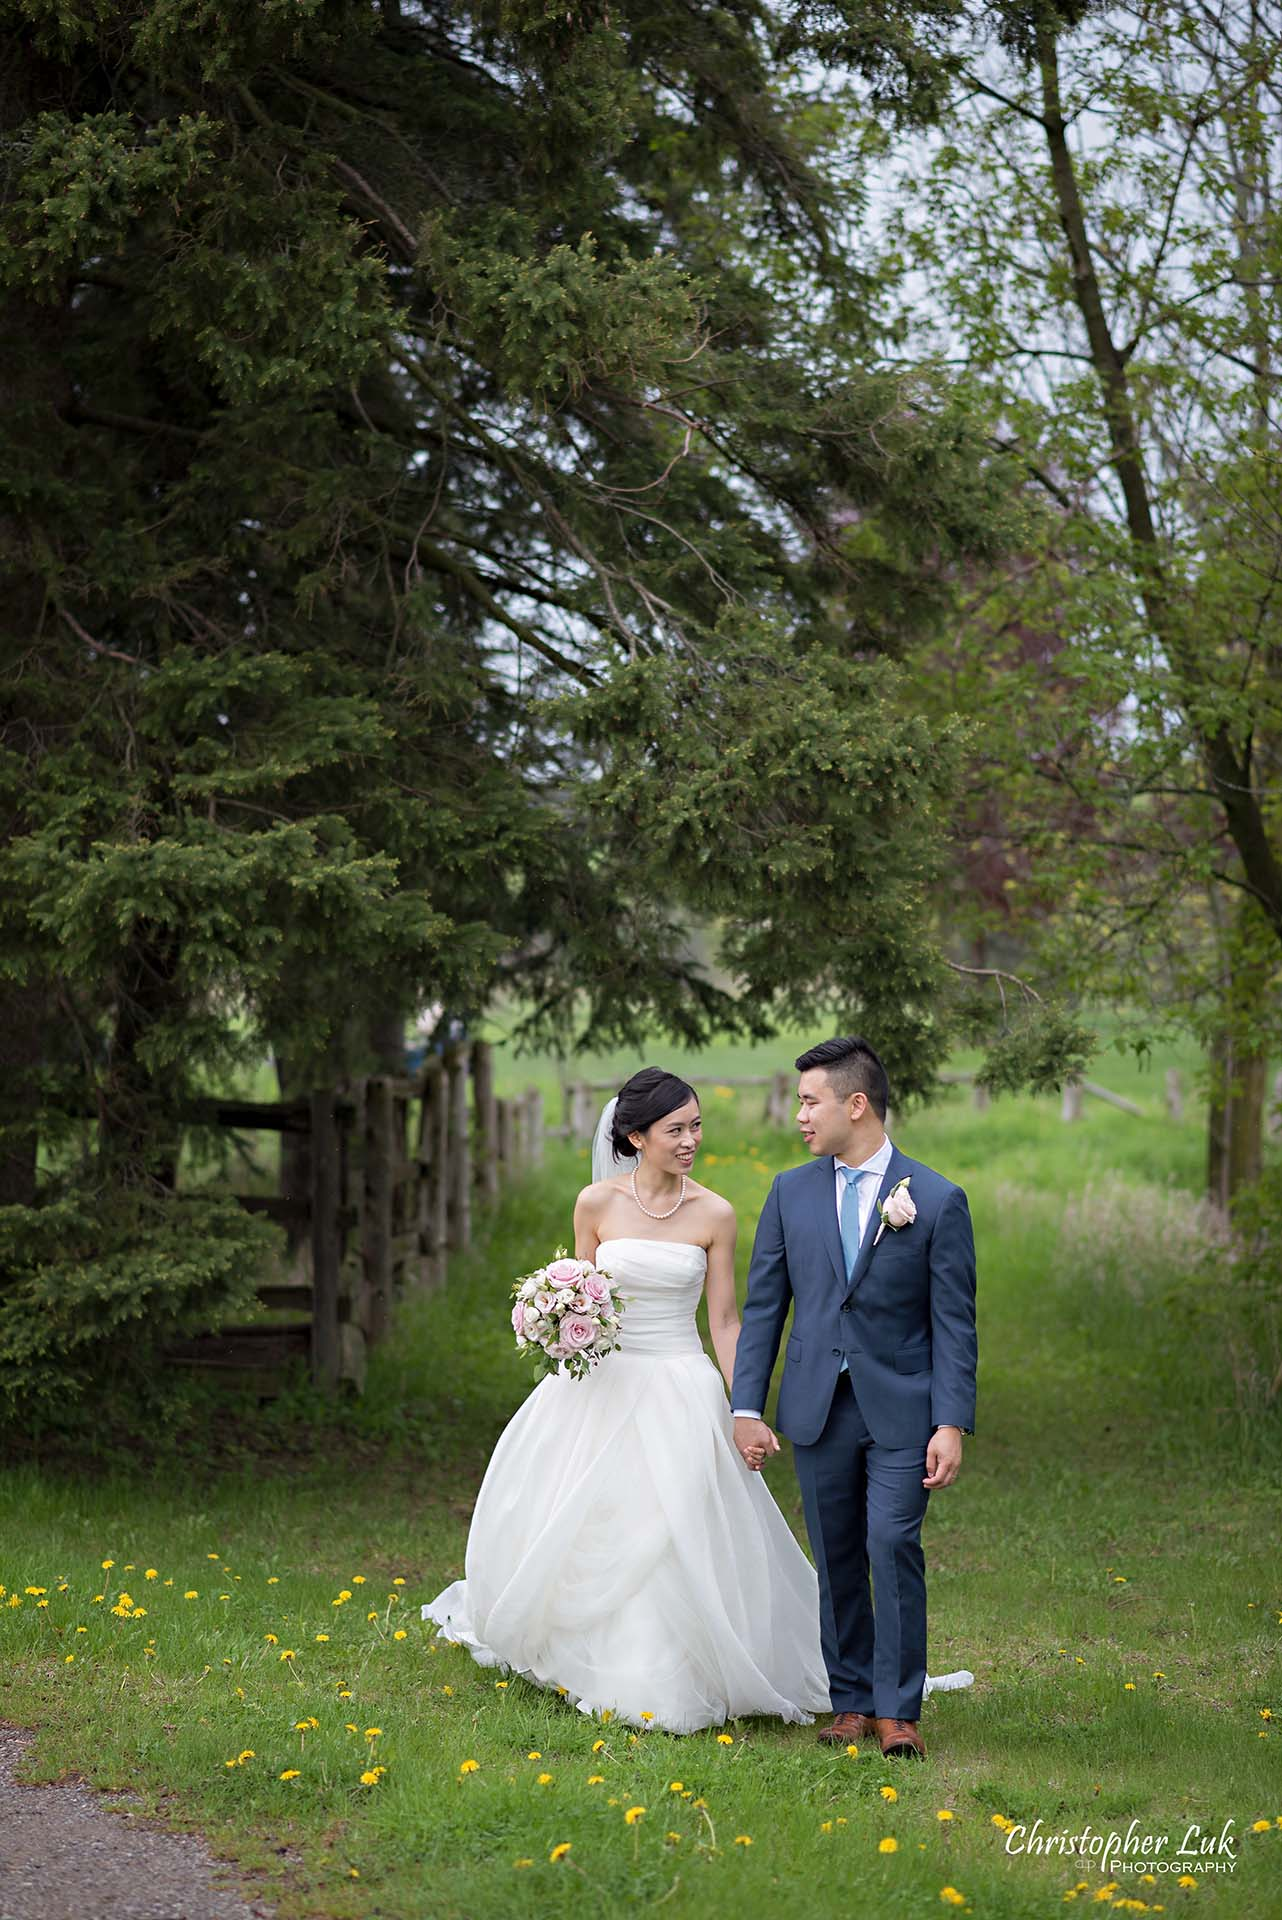 Christopher Luk Toronto Wedding Photographer Angus Glen Golf Club Markham Main Blue Barn Farm Historic Estate Building Together Natural Candid Photojournalistic Bride Groom Holding Hands Together Walking Green Trees